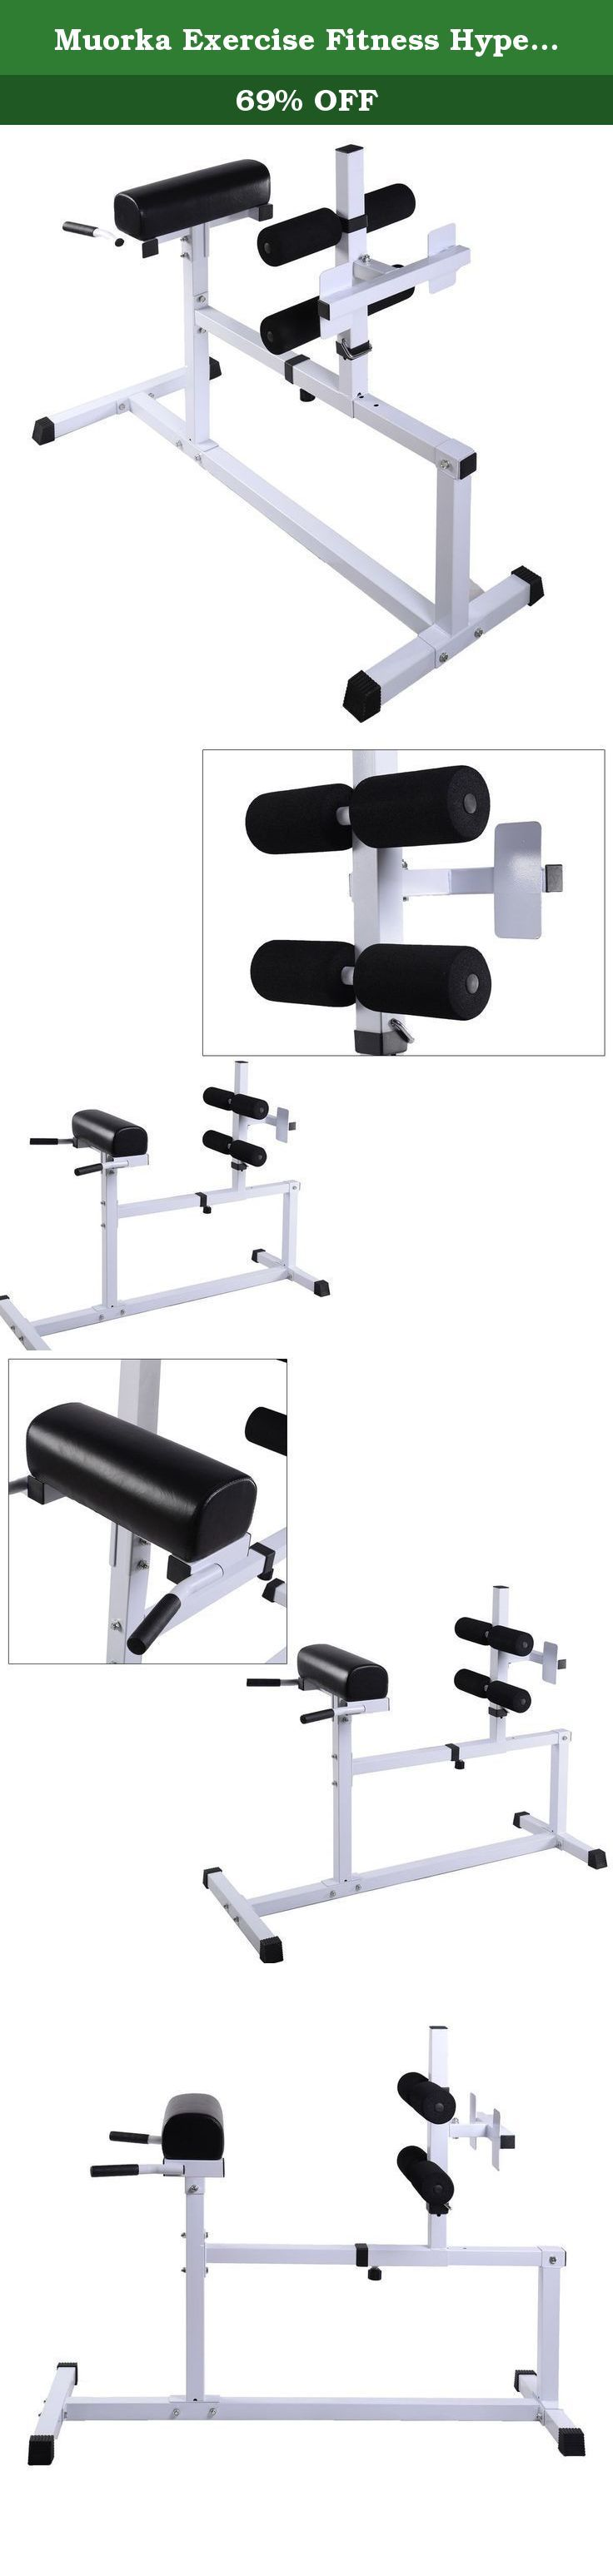 Muorka Exercise Fitness Hyper Extension Hyperextension Bench Chair Workout Core Abdominal. Description: The hyperextension bench effectively cushions your back while performing strength exercises. Muorka Hyper Extension Machine is the perfect piece of equipment to do just that. Featuring, quick adjustable sliding pegs and traction enhanced foot pegs to allow for secure positioning during use, this machine can accommodate most any user. Features: - Sturdy and durable - Build and define…